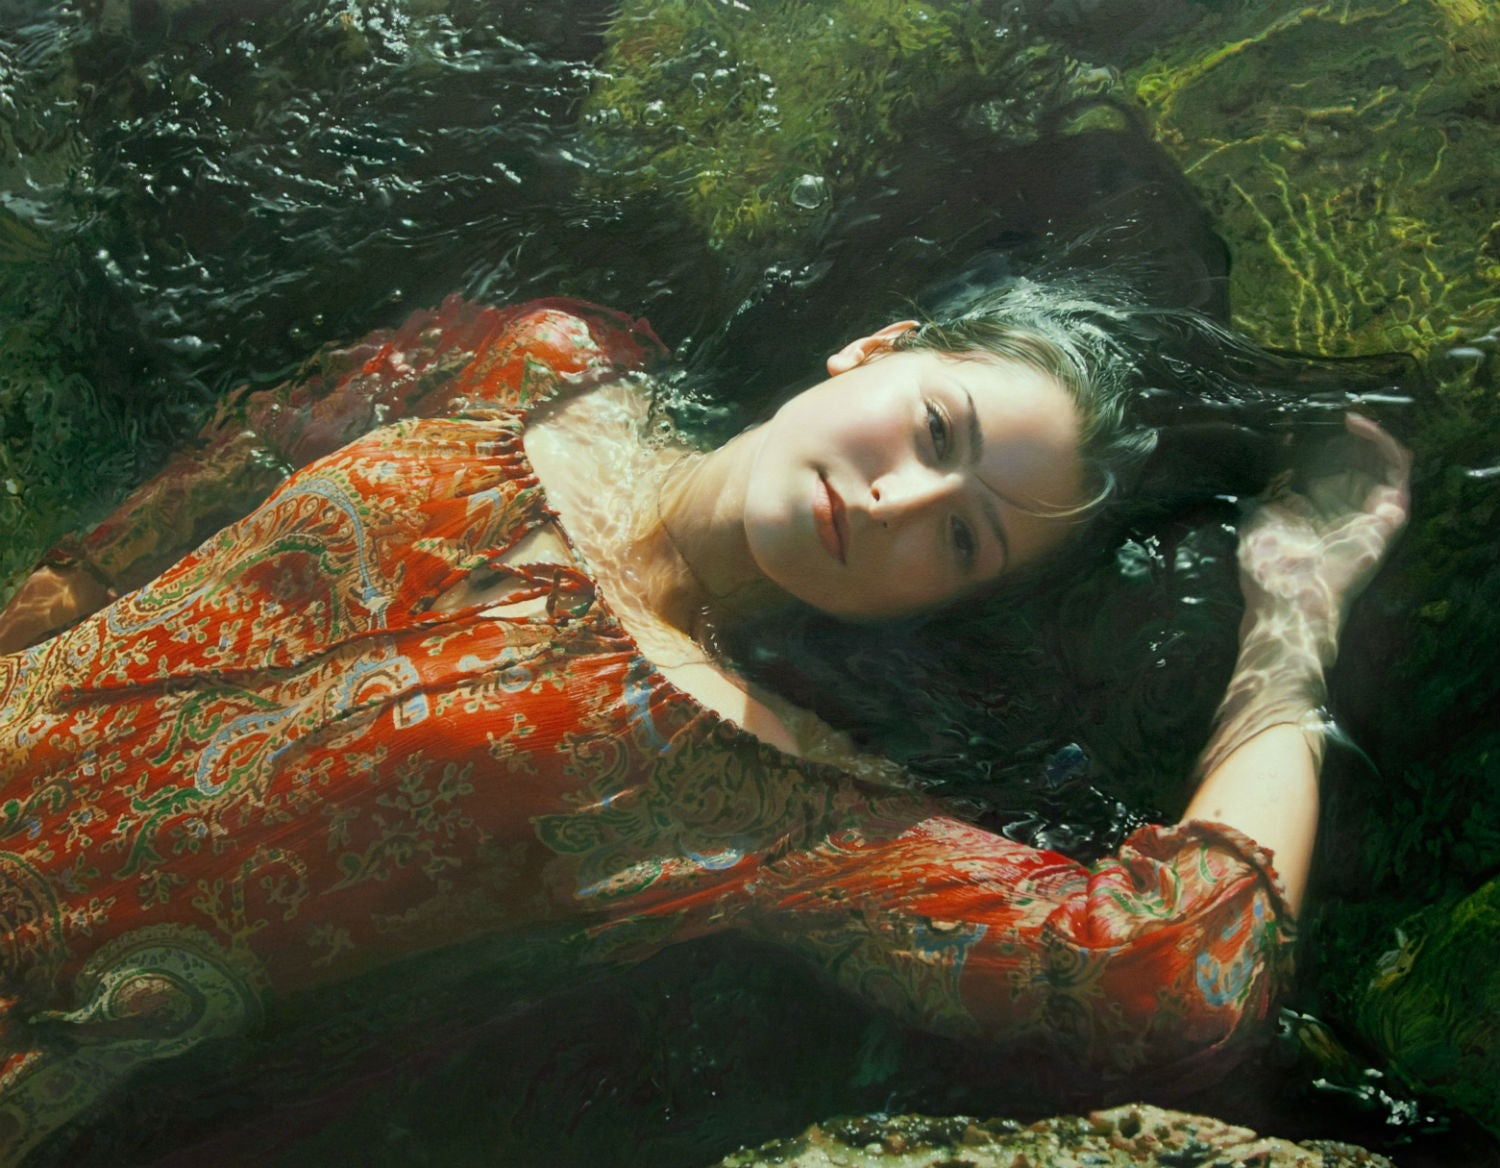 Erotic images of dreamy women are actually incredible oil paintings